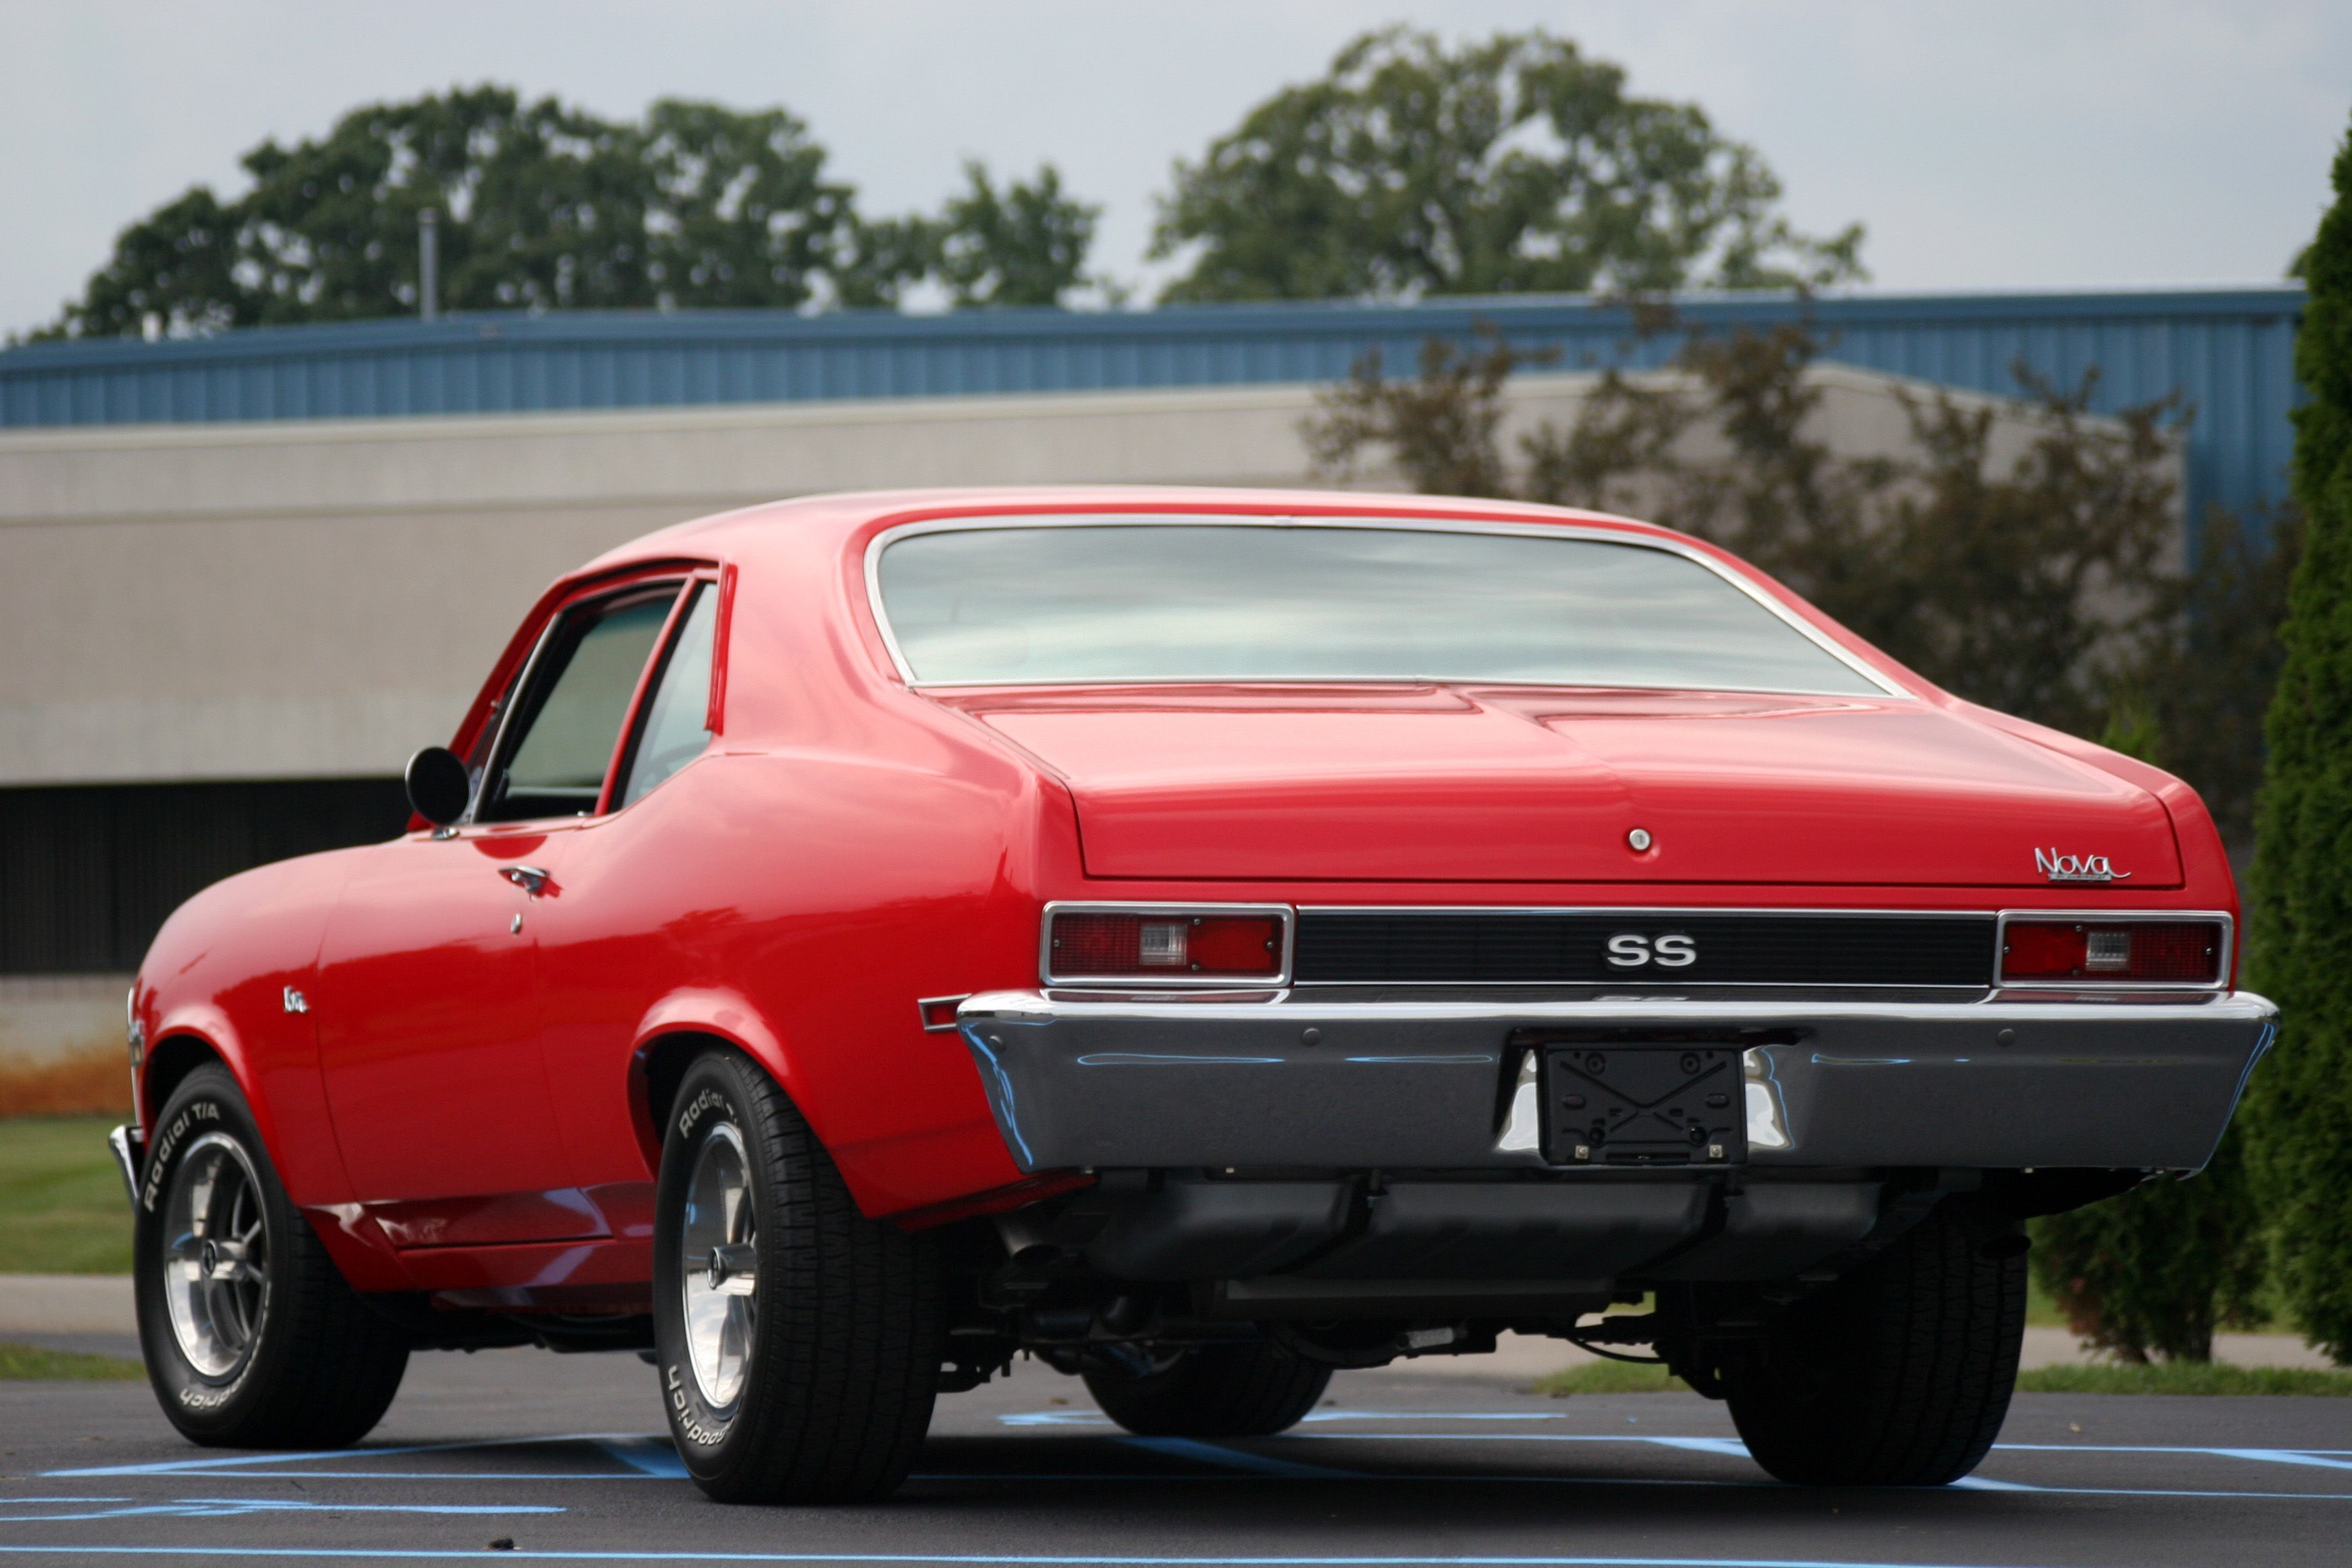 1965 chevy ii nova ss favorite cars american muscle pinterest - 1972 Chevy Nova Ss Learned To Drive In One Of These Lucky Me